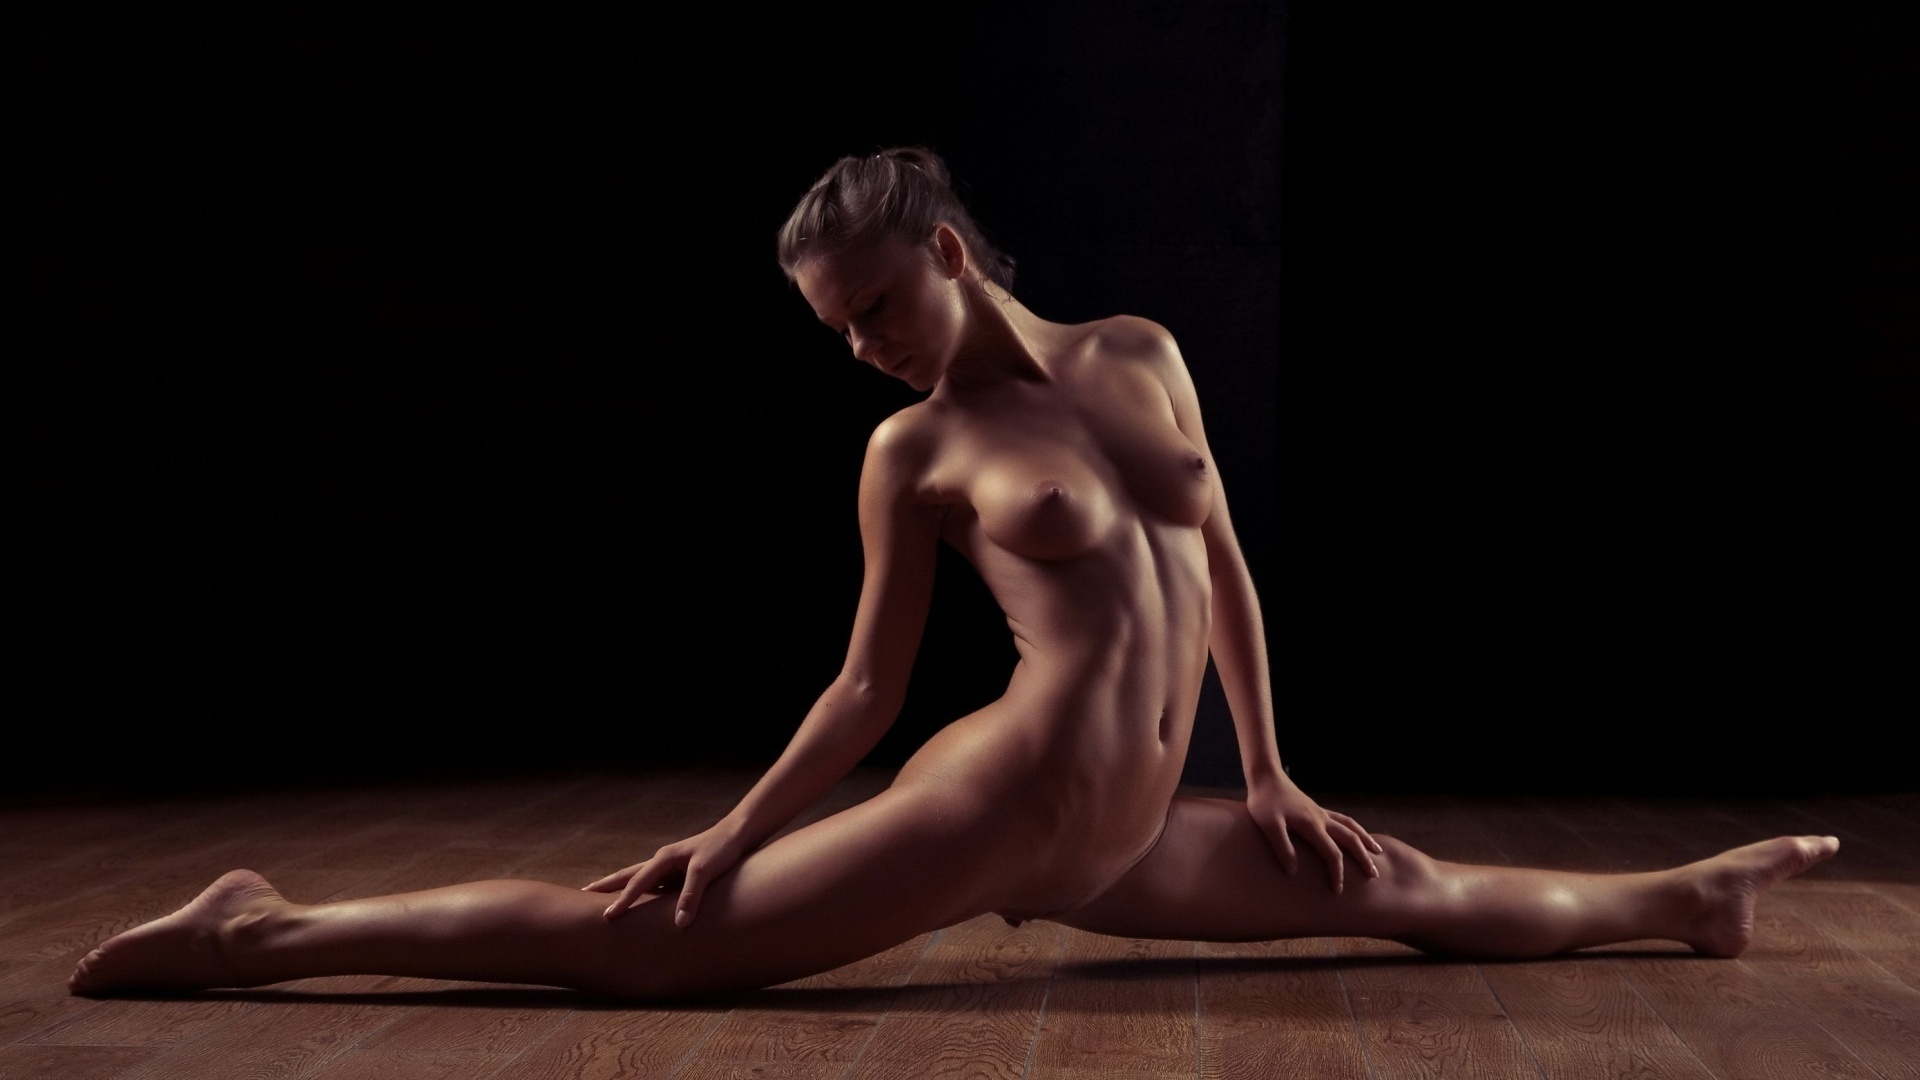 Pictures explicit nude